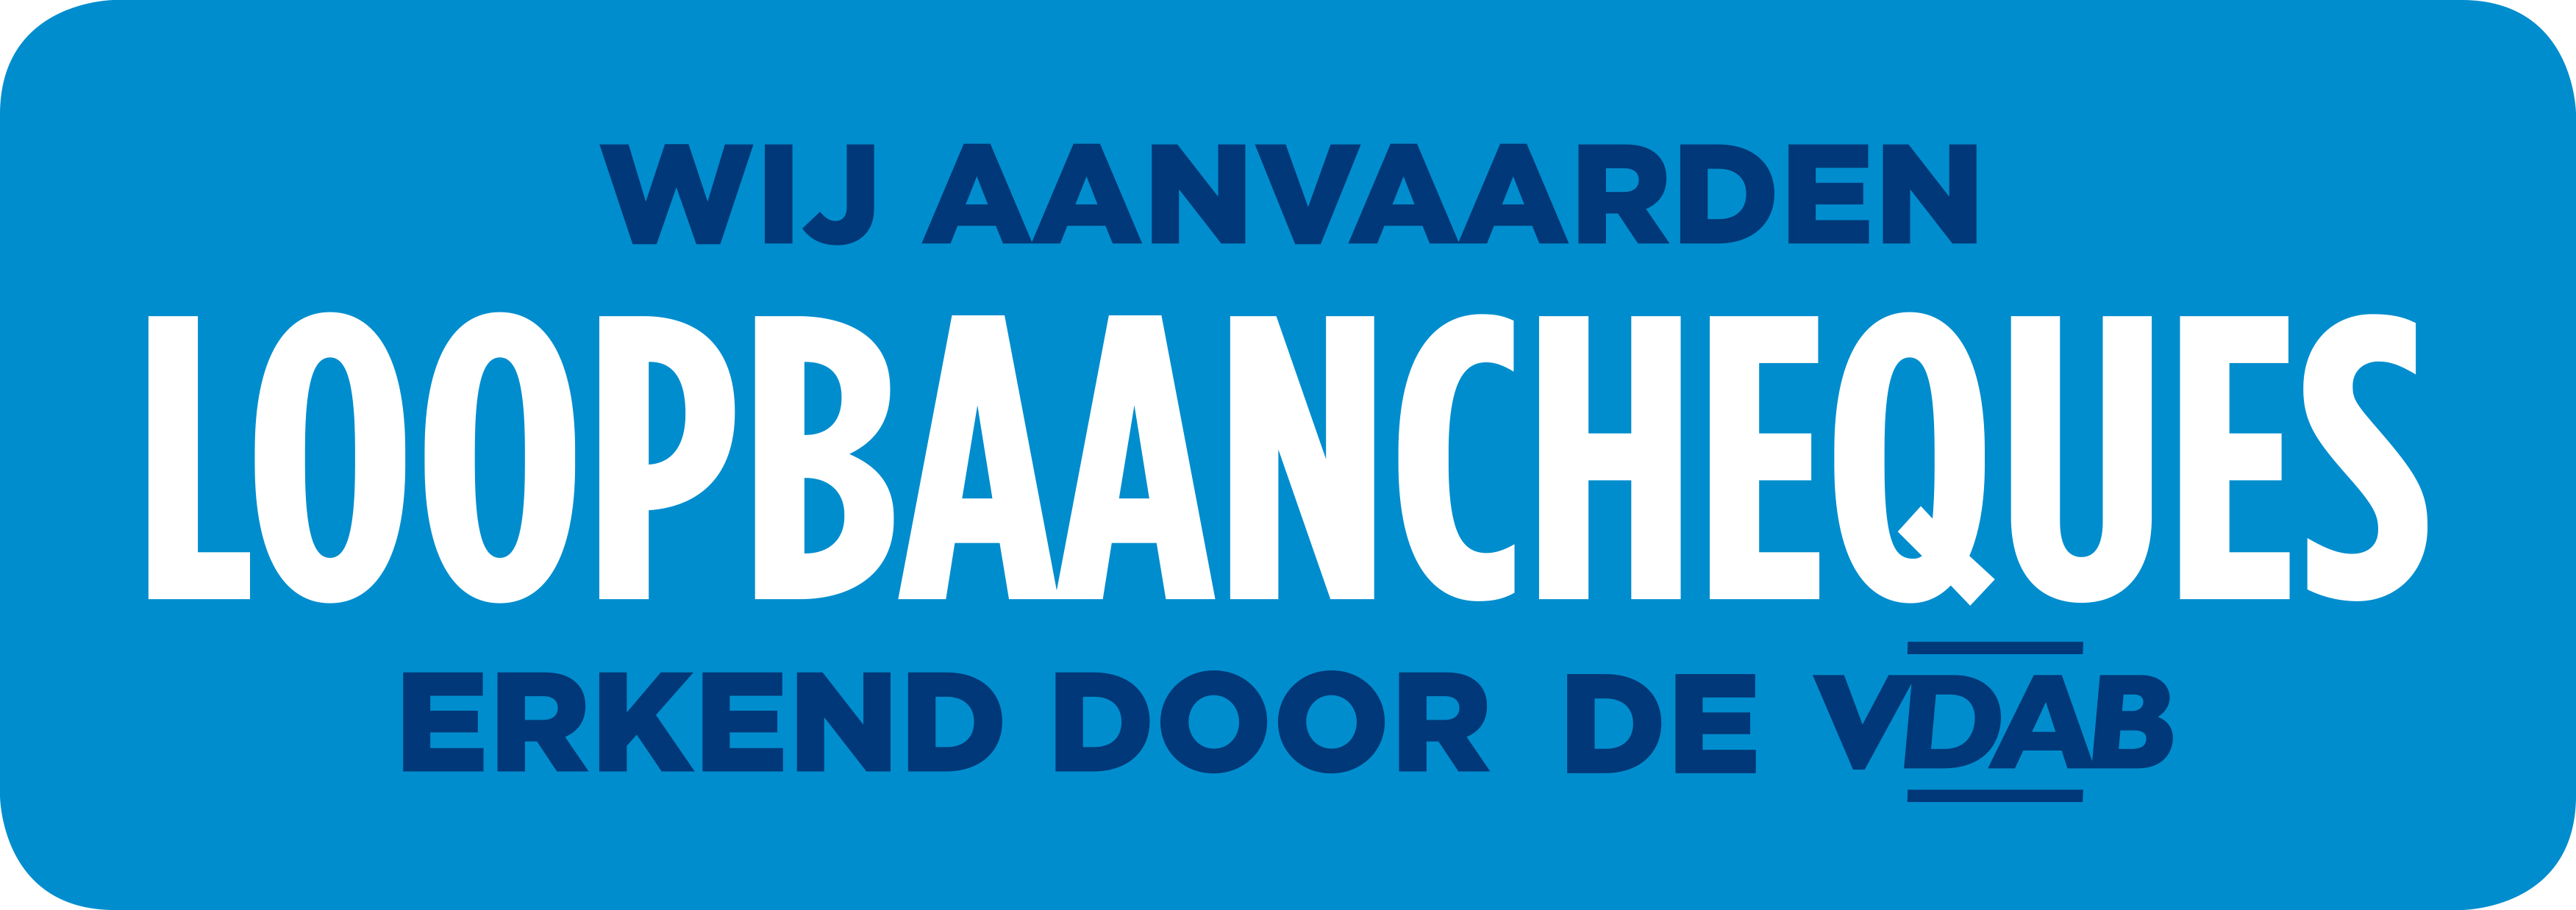 Loopbaancheque label